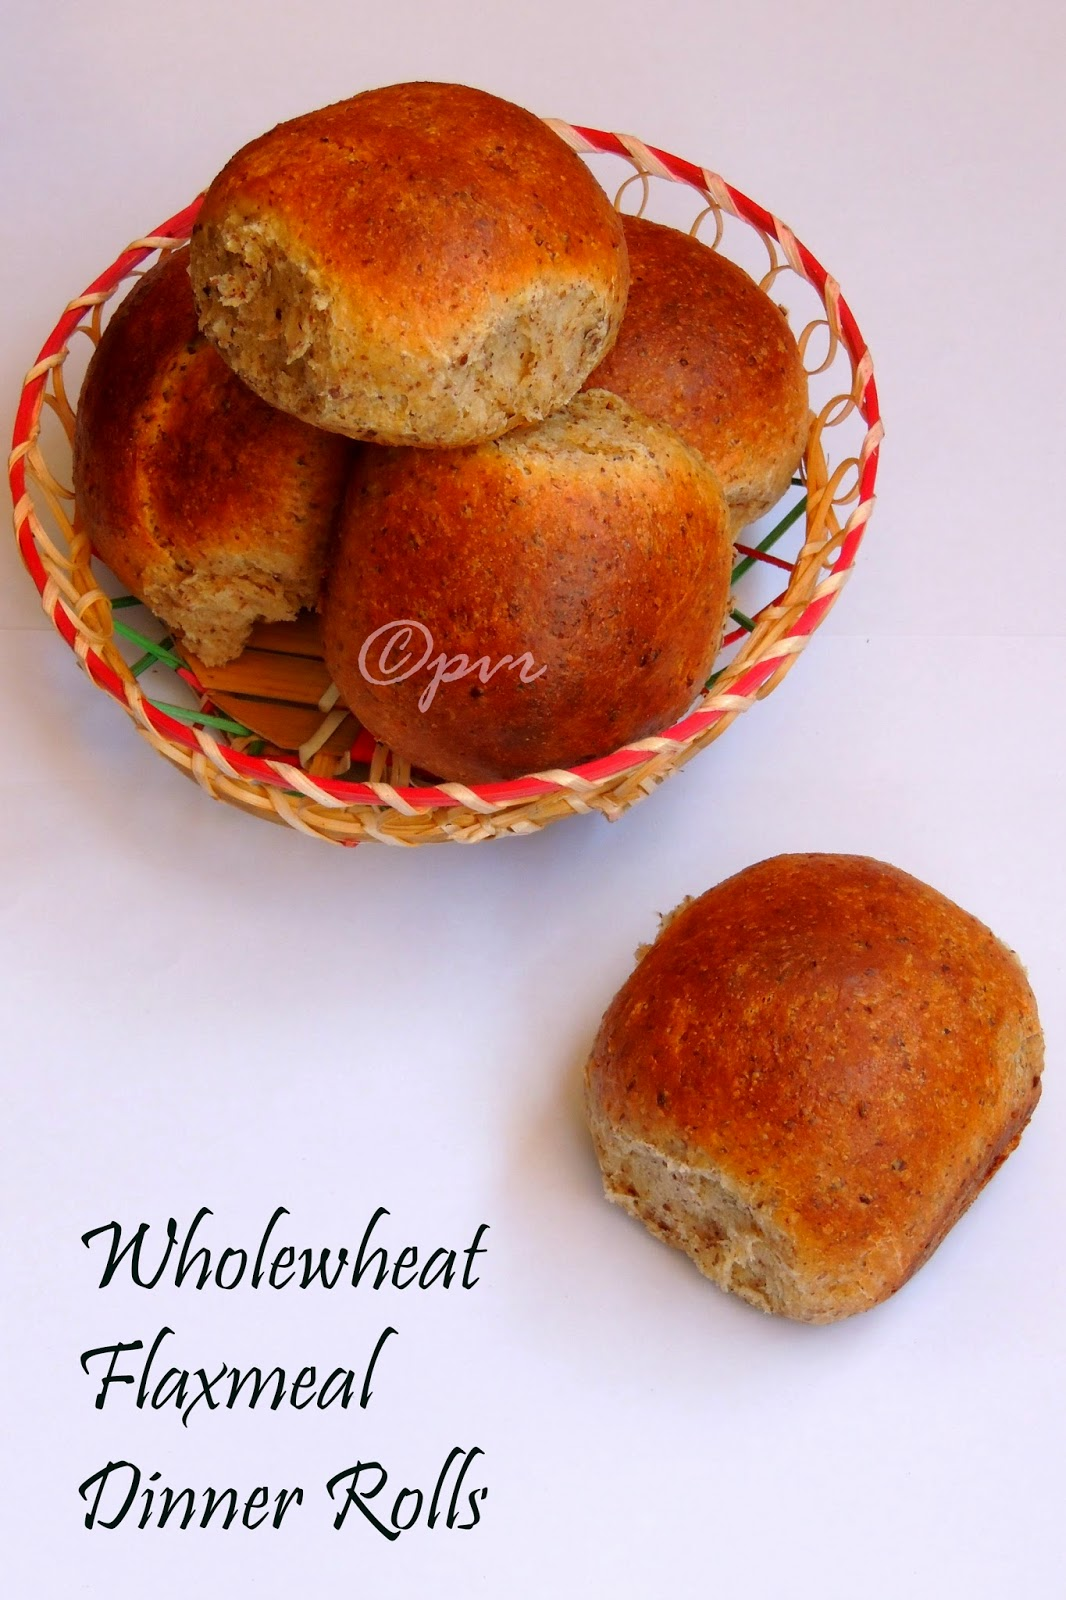 Wholewheat Flaxmeal Dinner Rolls